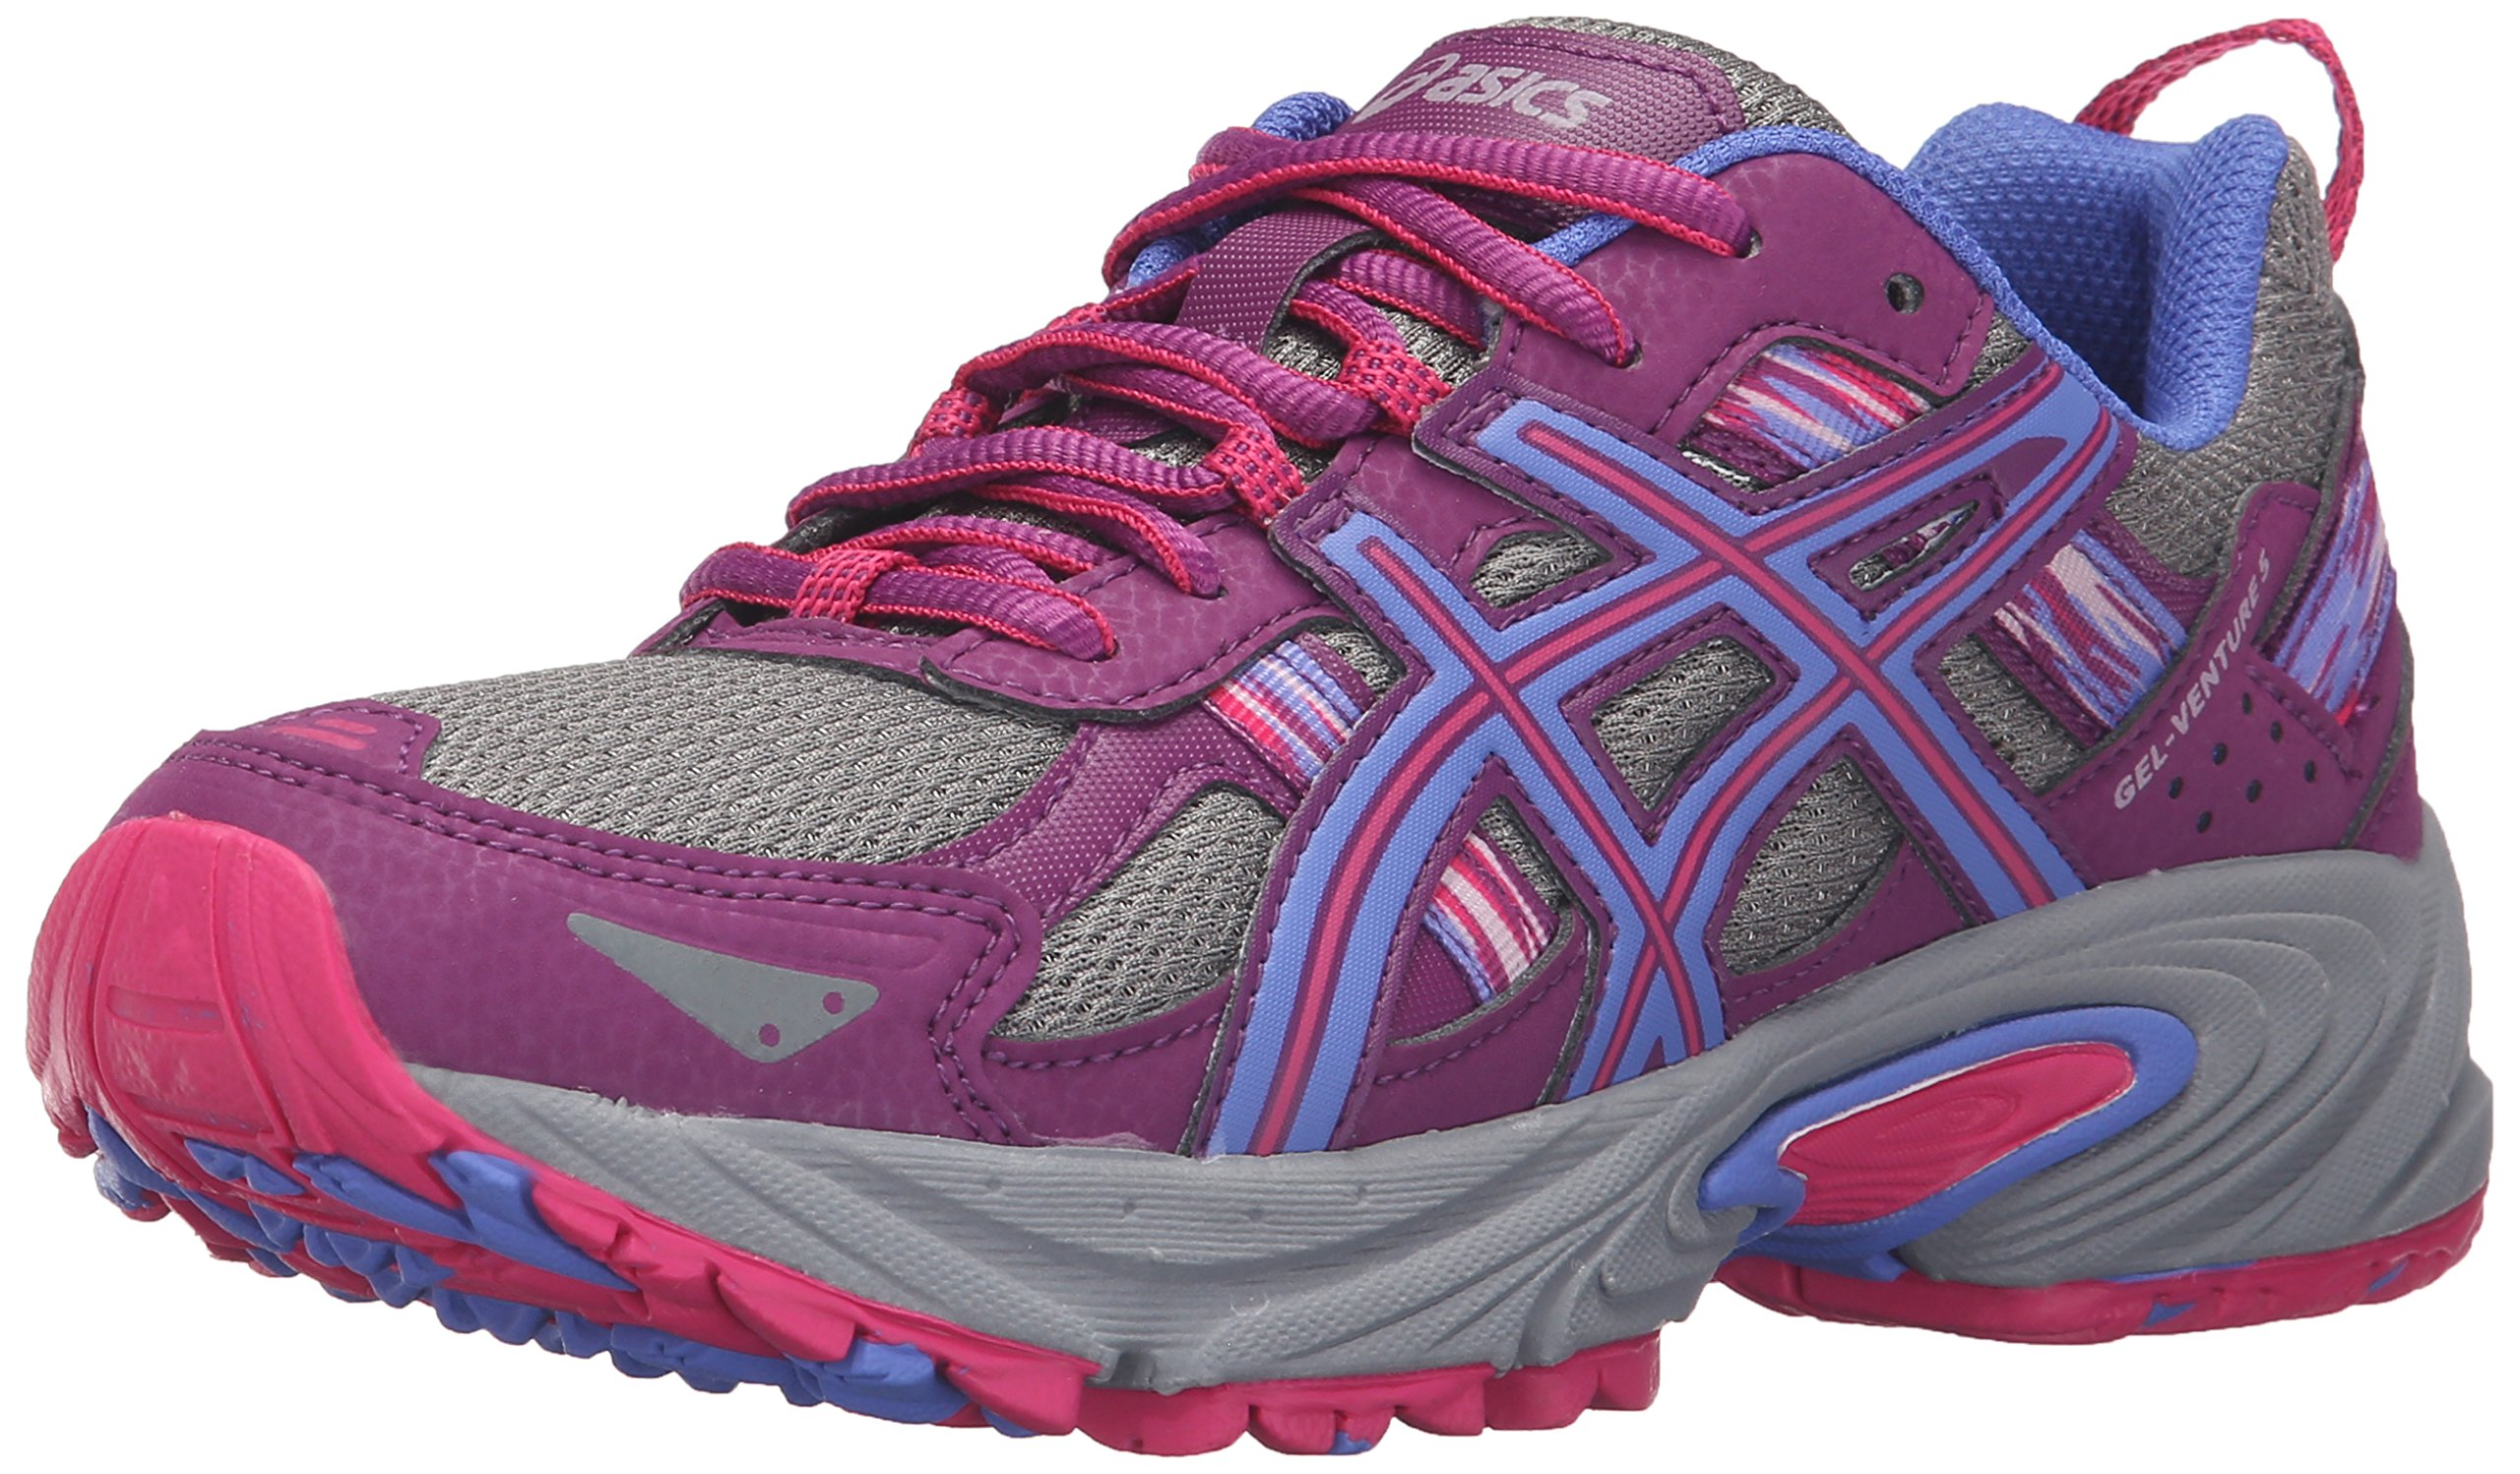 ASICS Women's Gel-Venture 5 Trail